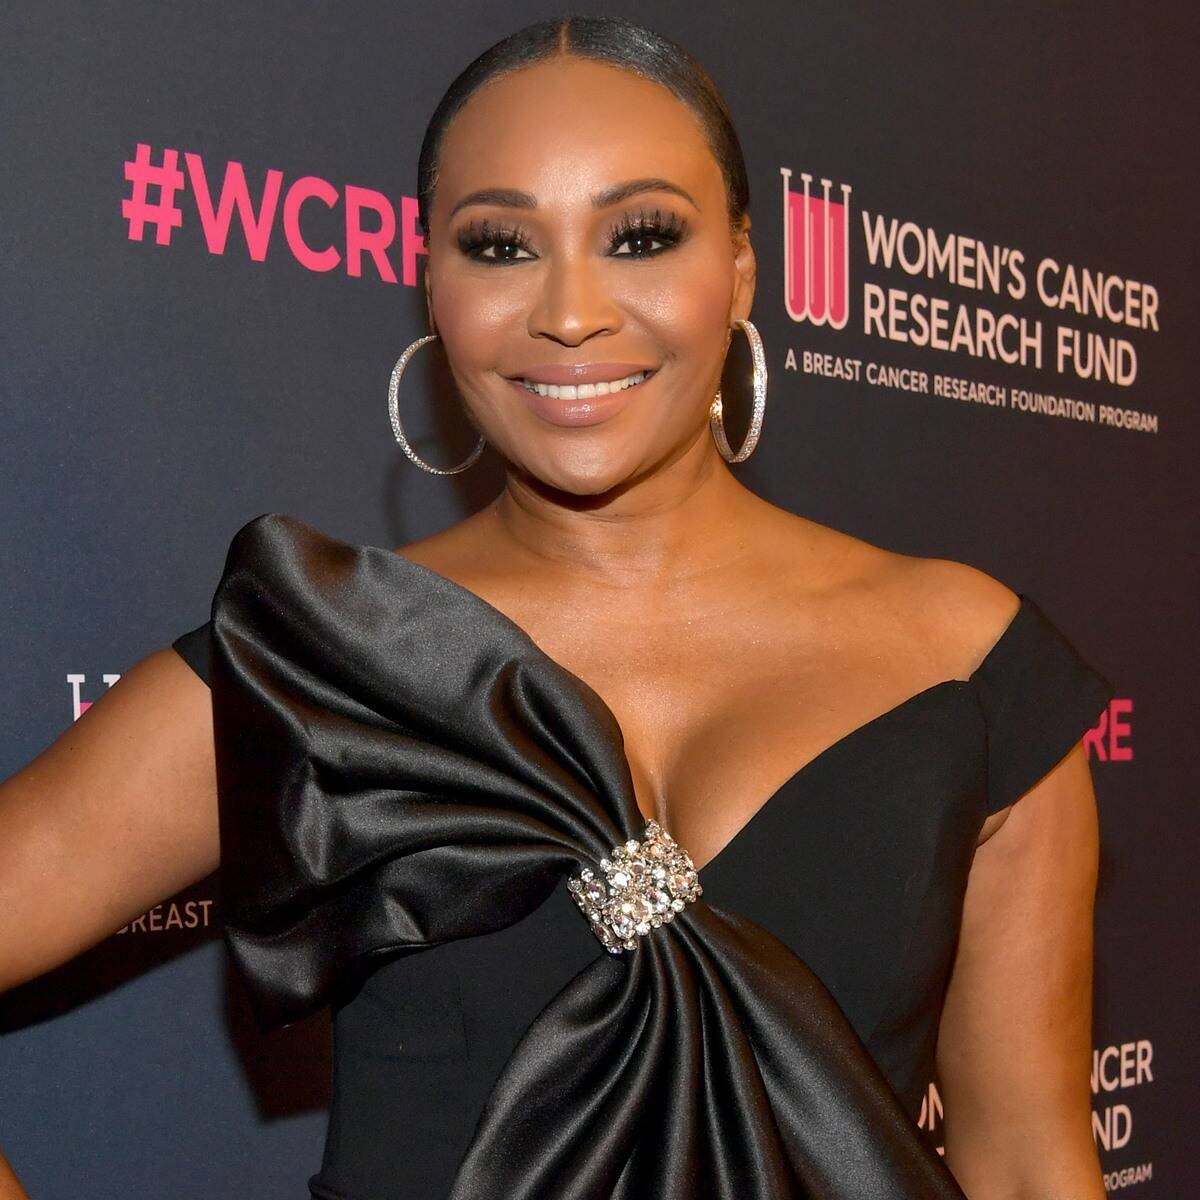 Cynthia Bailey Looks Drop-Dead Gorgeous In This Red Dress – Fans Are Praising Her Weight Loss